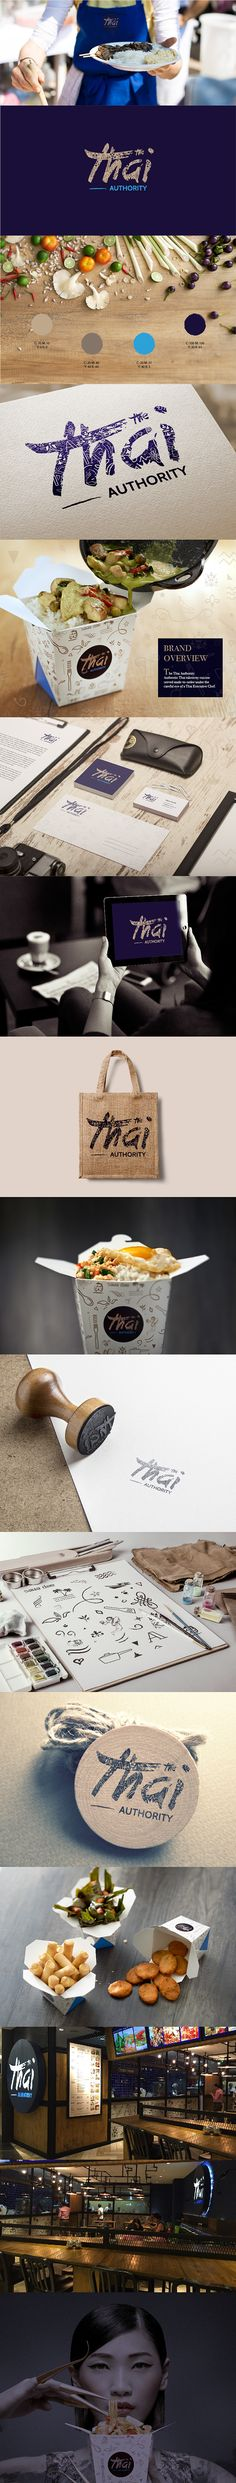 Awesome branding project from Thai Authority Restaurant on Behance by Agata Dondzik. #branding